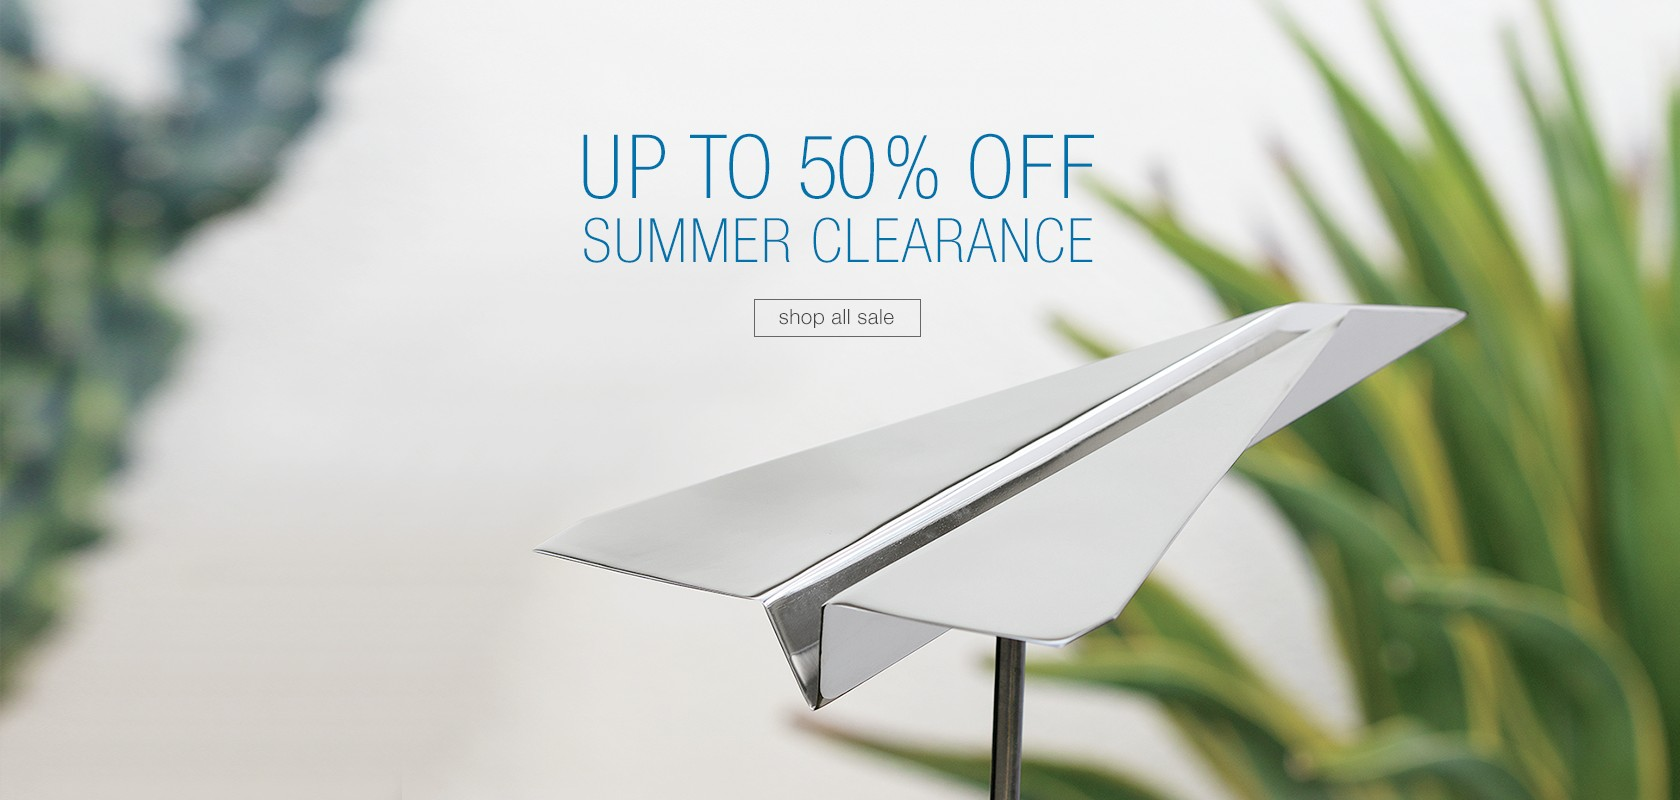 starts now. up to 50% off summer clearance